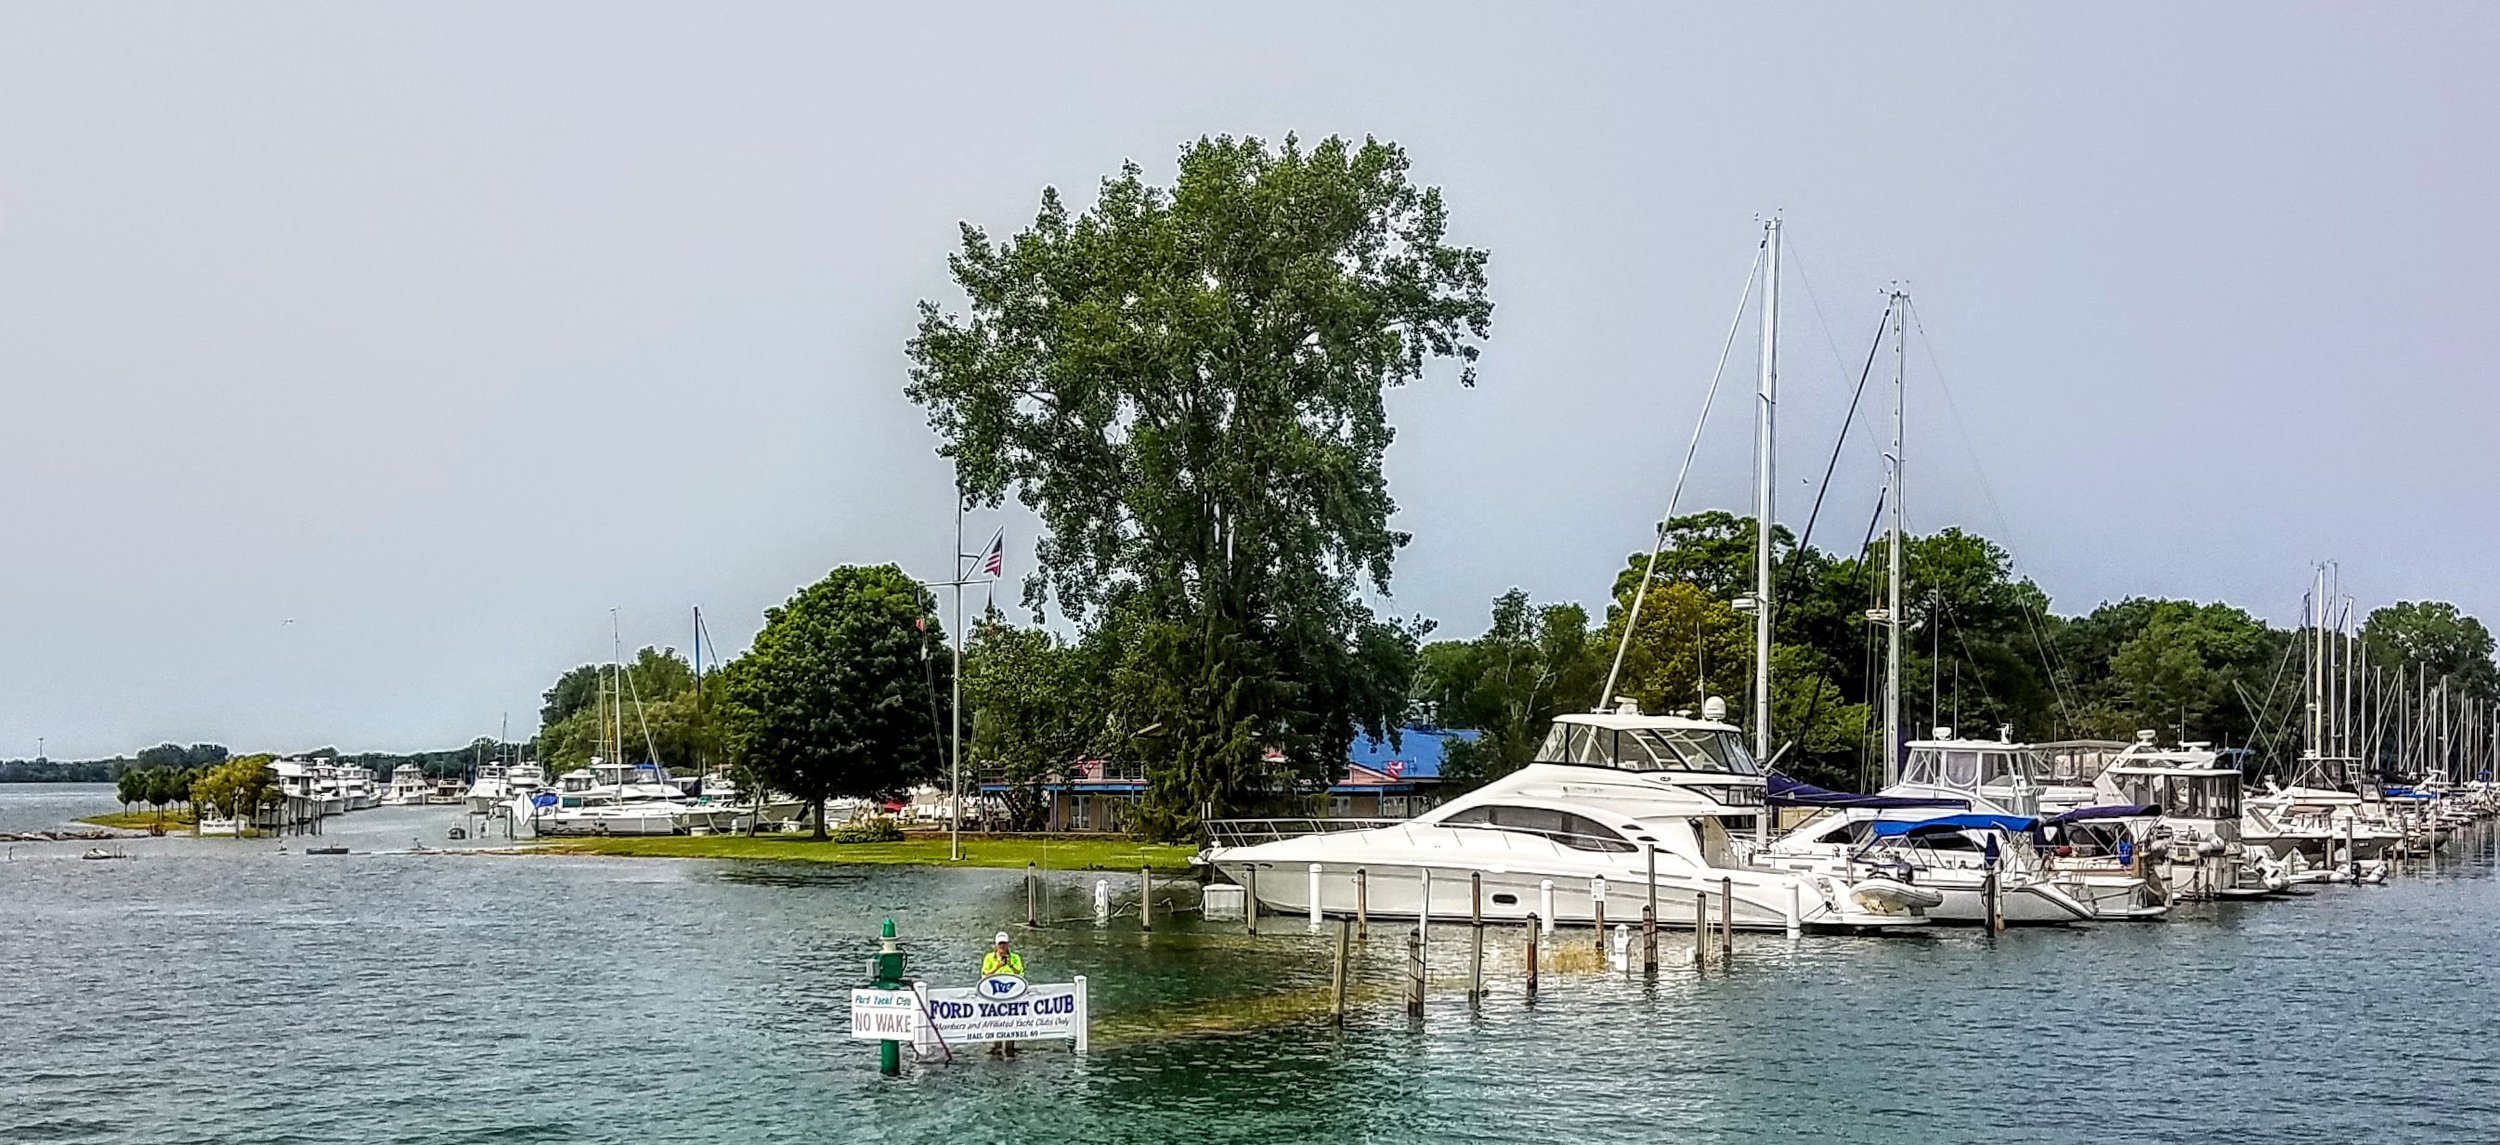 Bill Gilmore wading out to guide us into our flooded 'well' (that's what they call slips here) at the Ford Yacht Club in Grosse Ile.